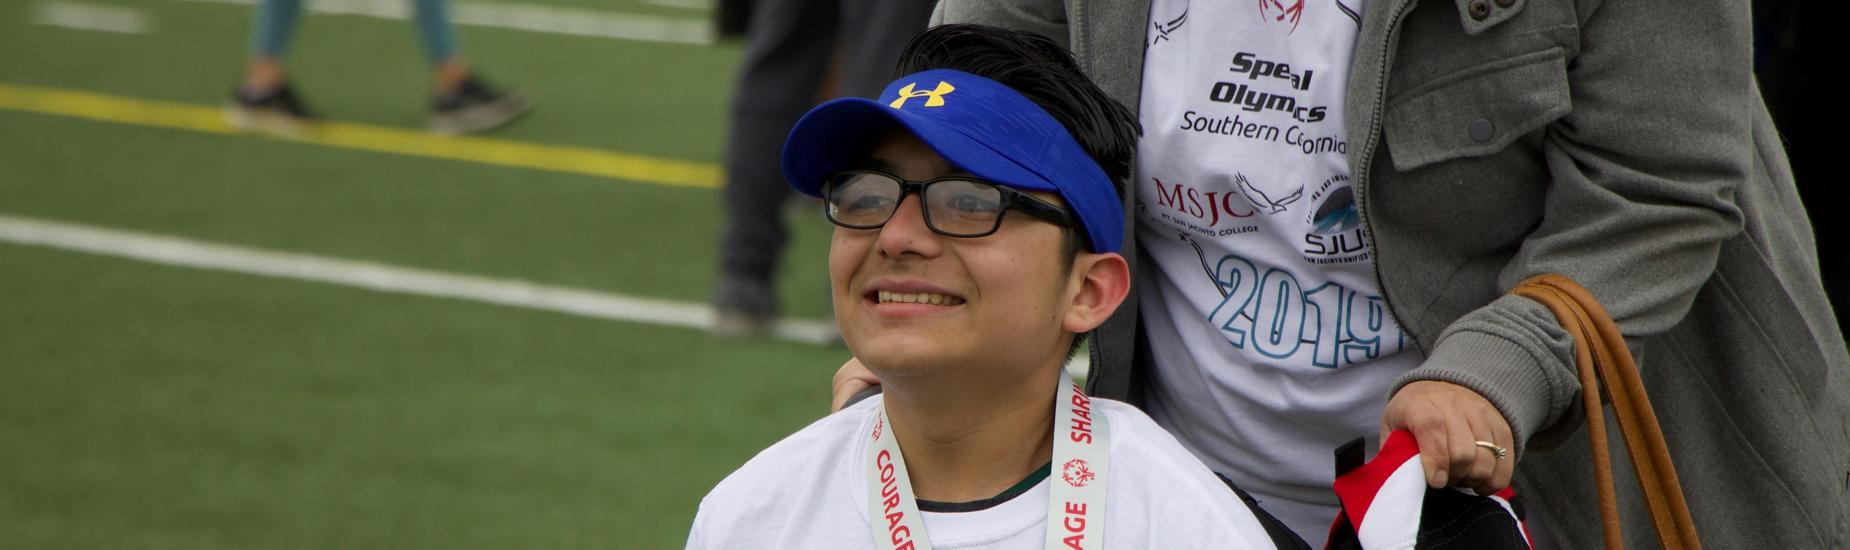 Student-Athlete Smiling After Winning a Medal at the Special Olympics